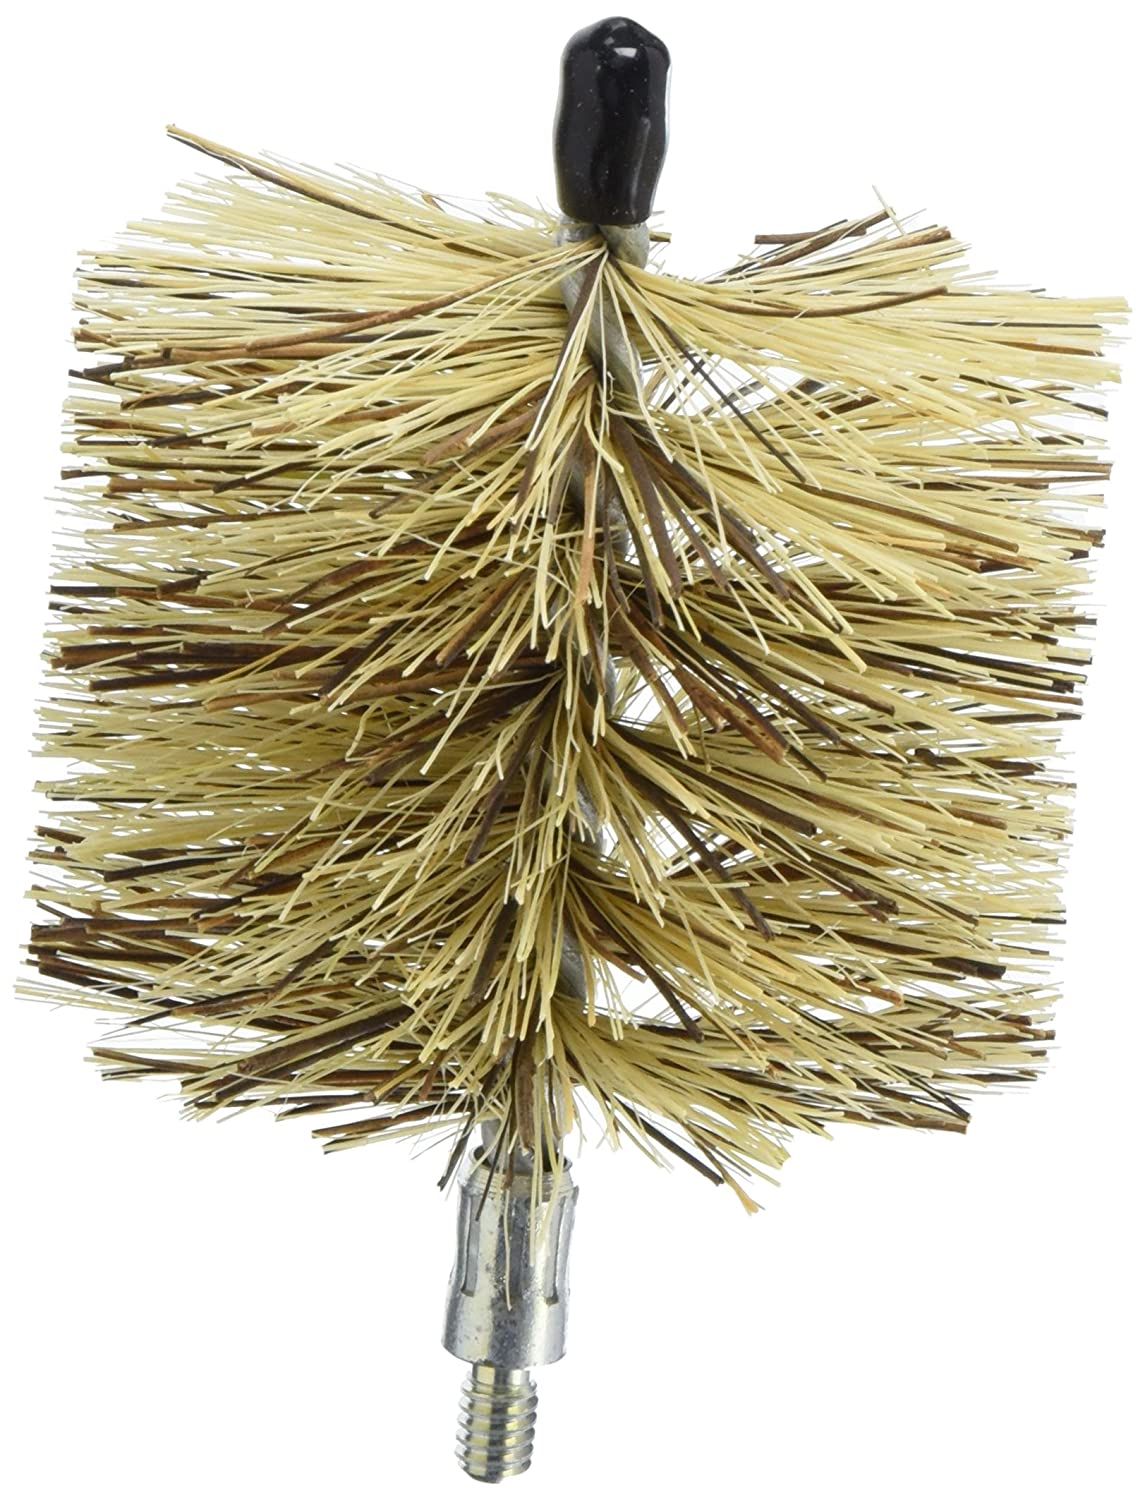 MEECO'S RED DEVIL 84332 3-Inch Pellet Stove Cleaning Brush Meeco'S Red Devil